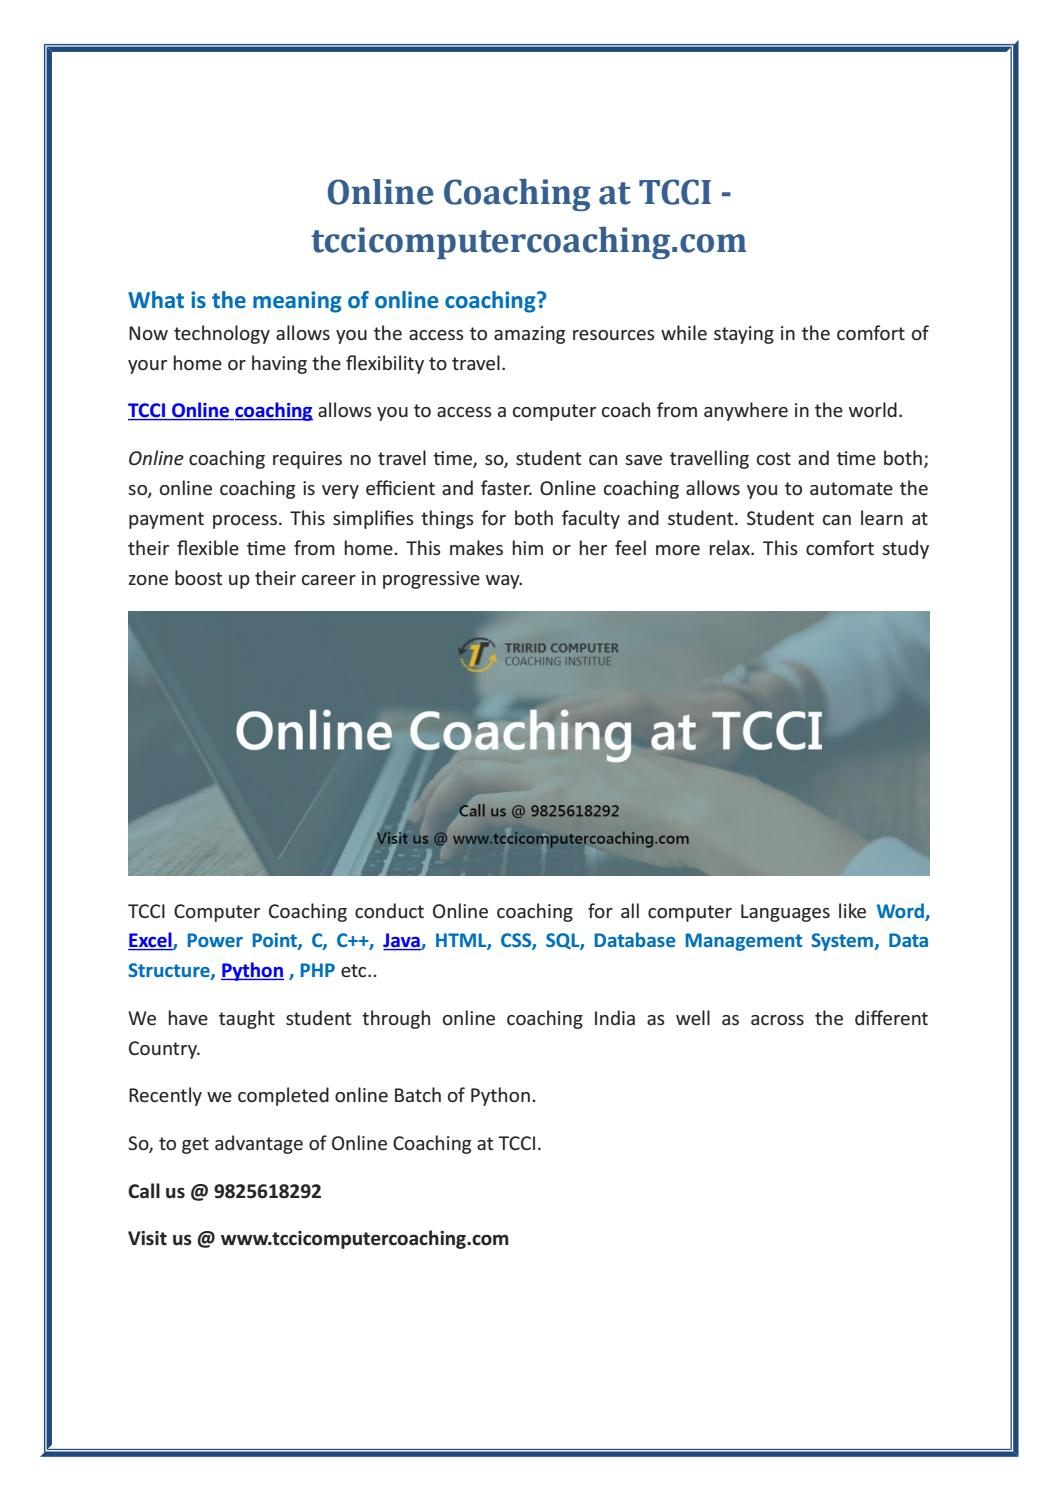 Online Coaching at TCCI - tccicomputercoaching com by